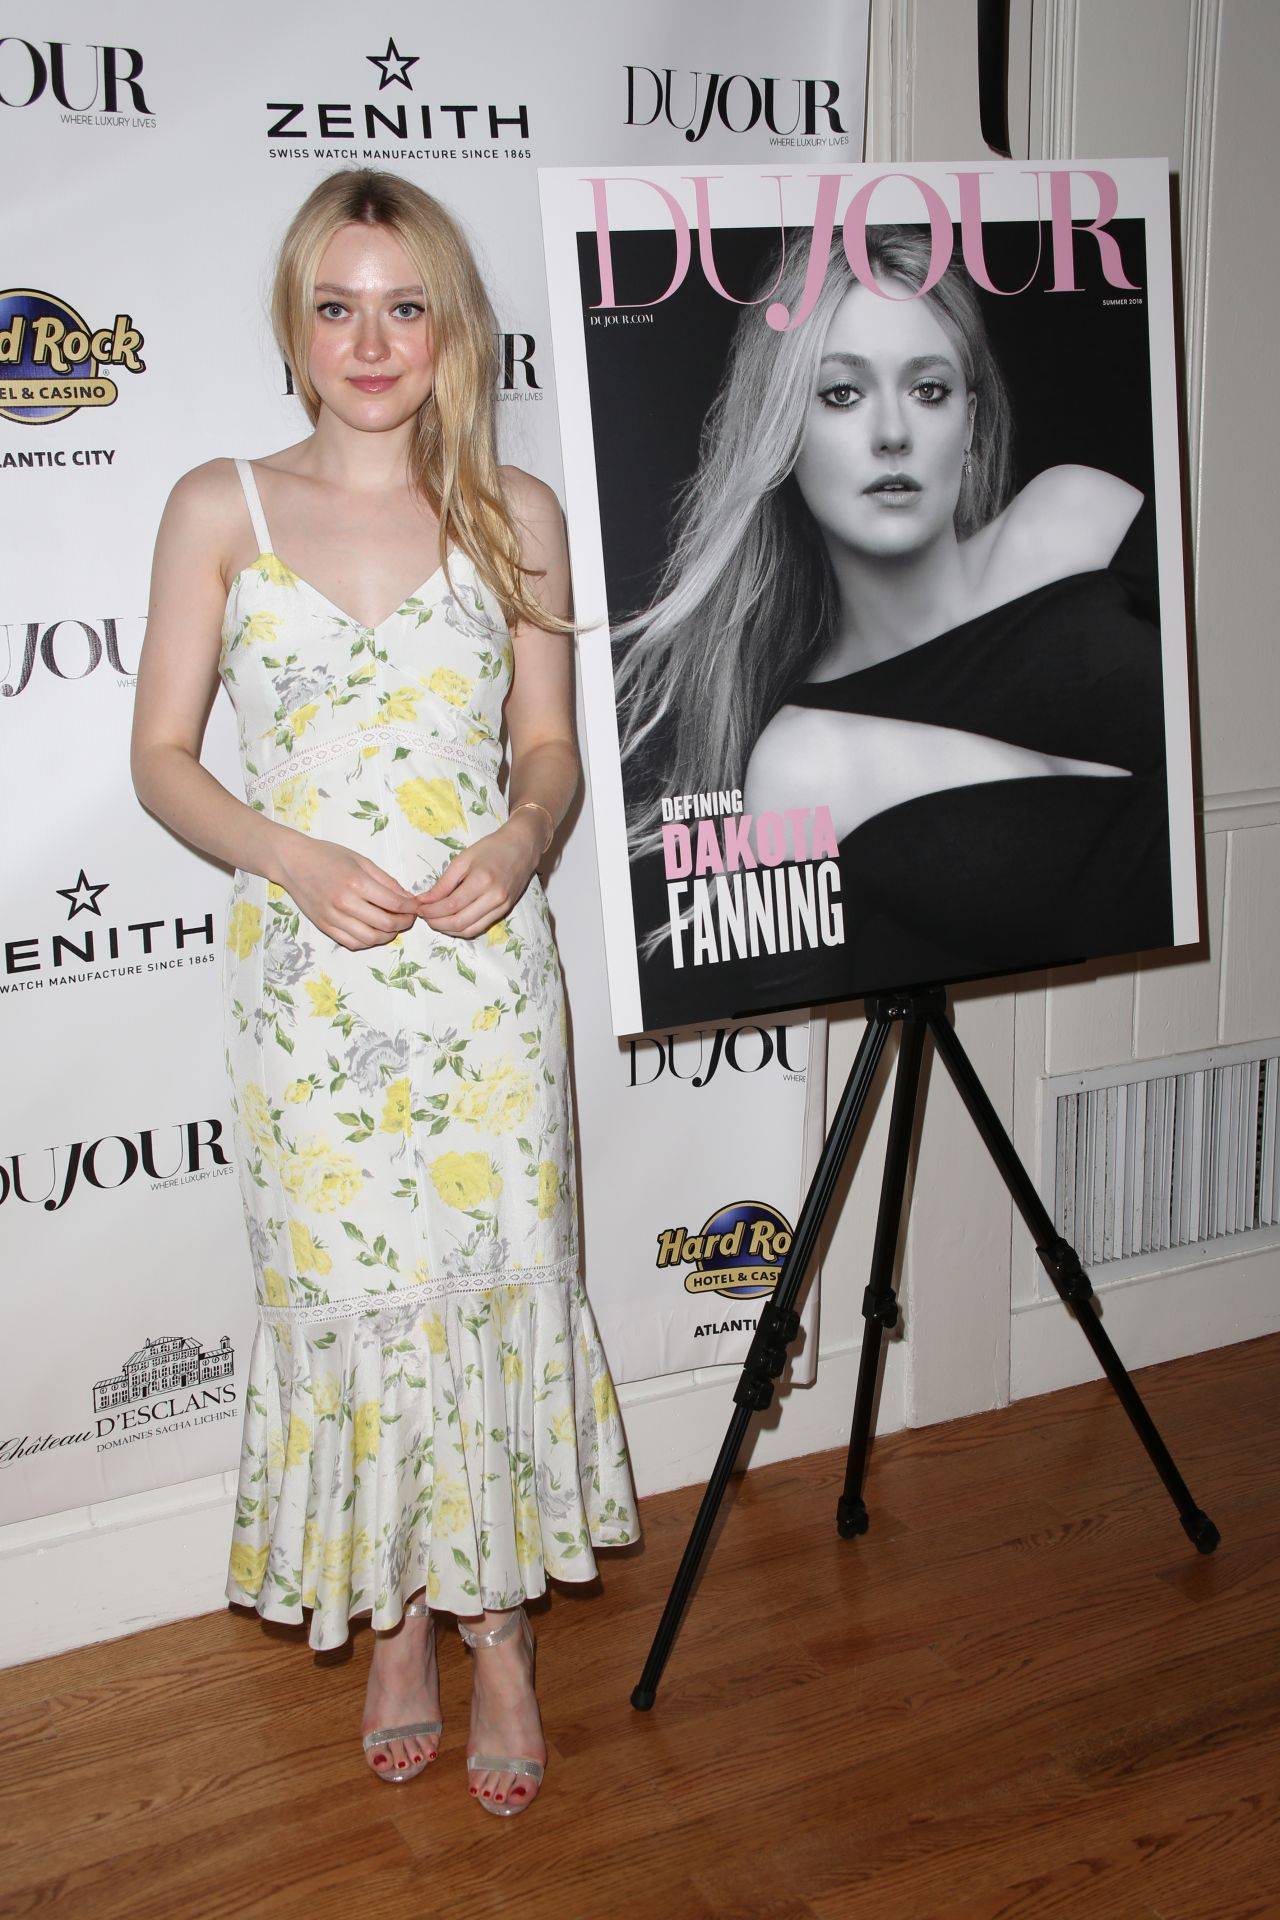 http://celebmafia.com/wp-content/uploads/2018/05/dakota-fanning-dujour-magazine-annual-memorial-day-party-in-new-york-05-26-2018-6.jpg